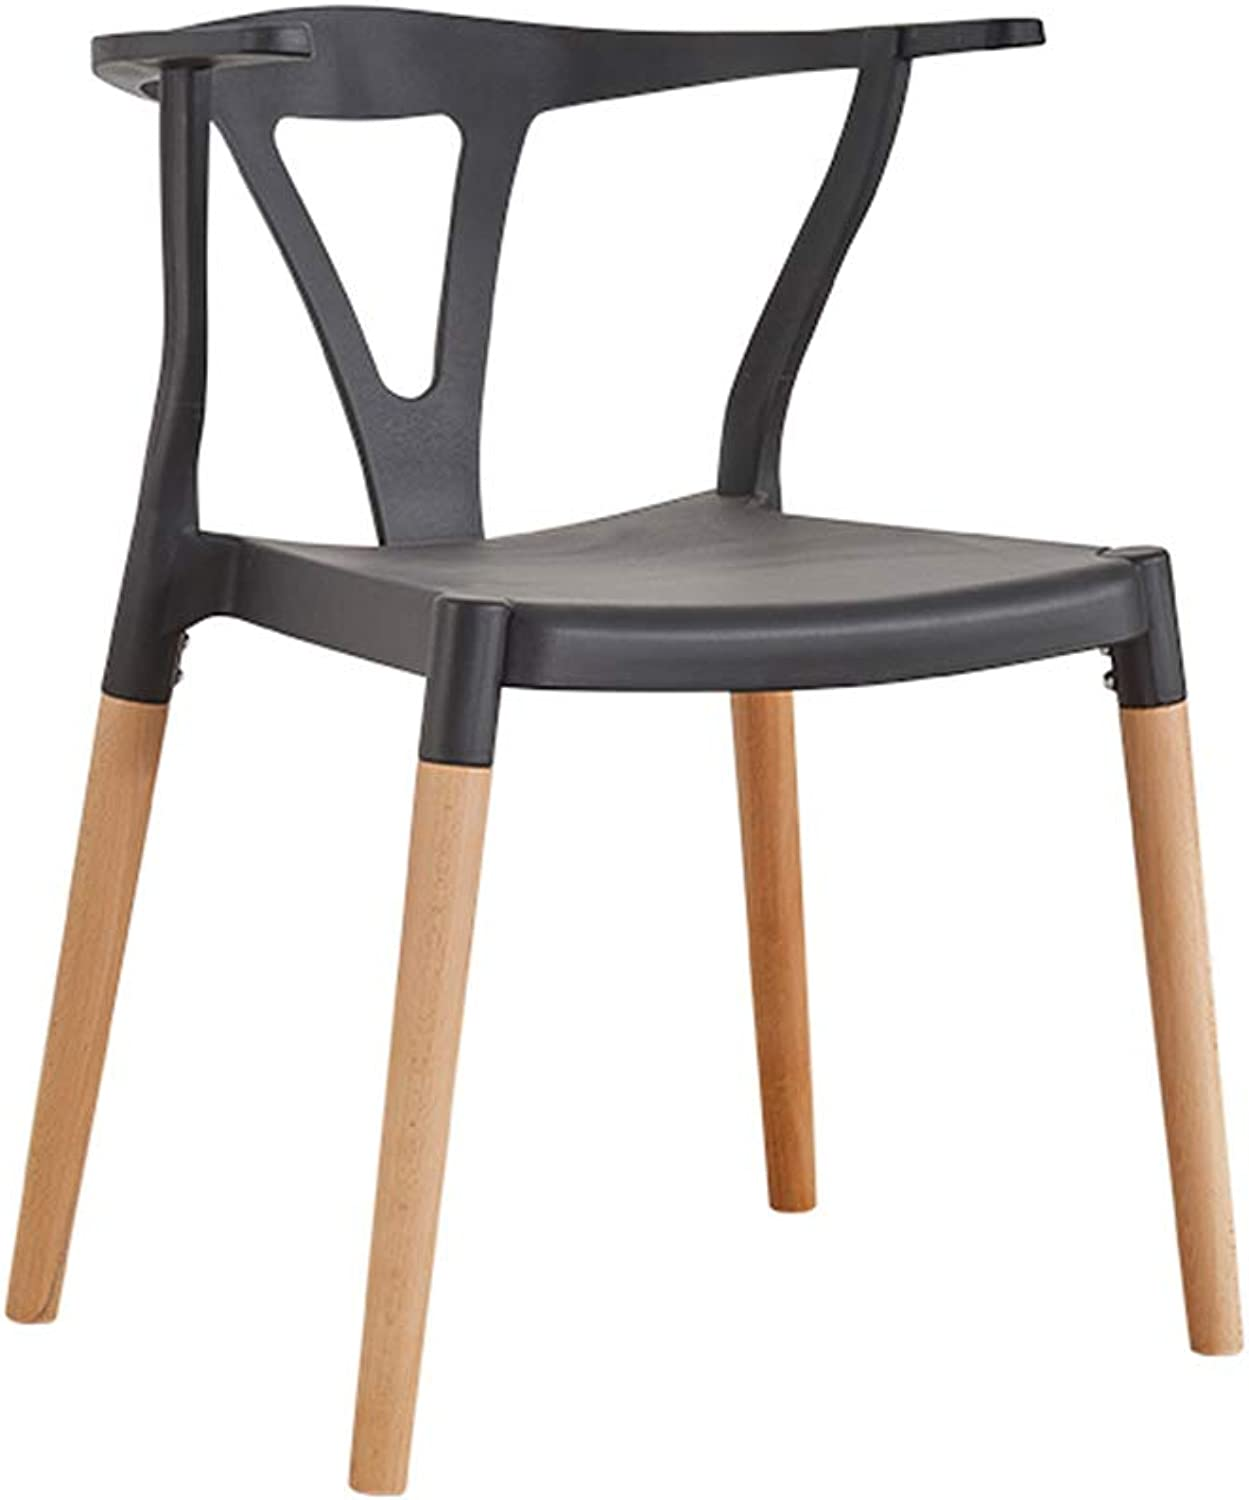 LJHA ertongcanyi Stool, Home Solid Wood Restaurant Desk Stool Reception Chair Adult White Dining Stool 2 color Optional (color   Black, Size   46  45  74cm)